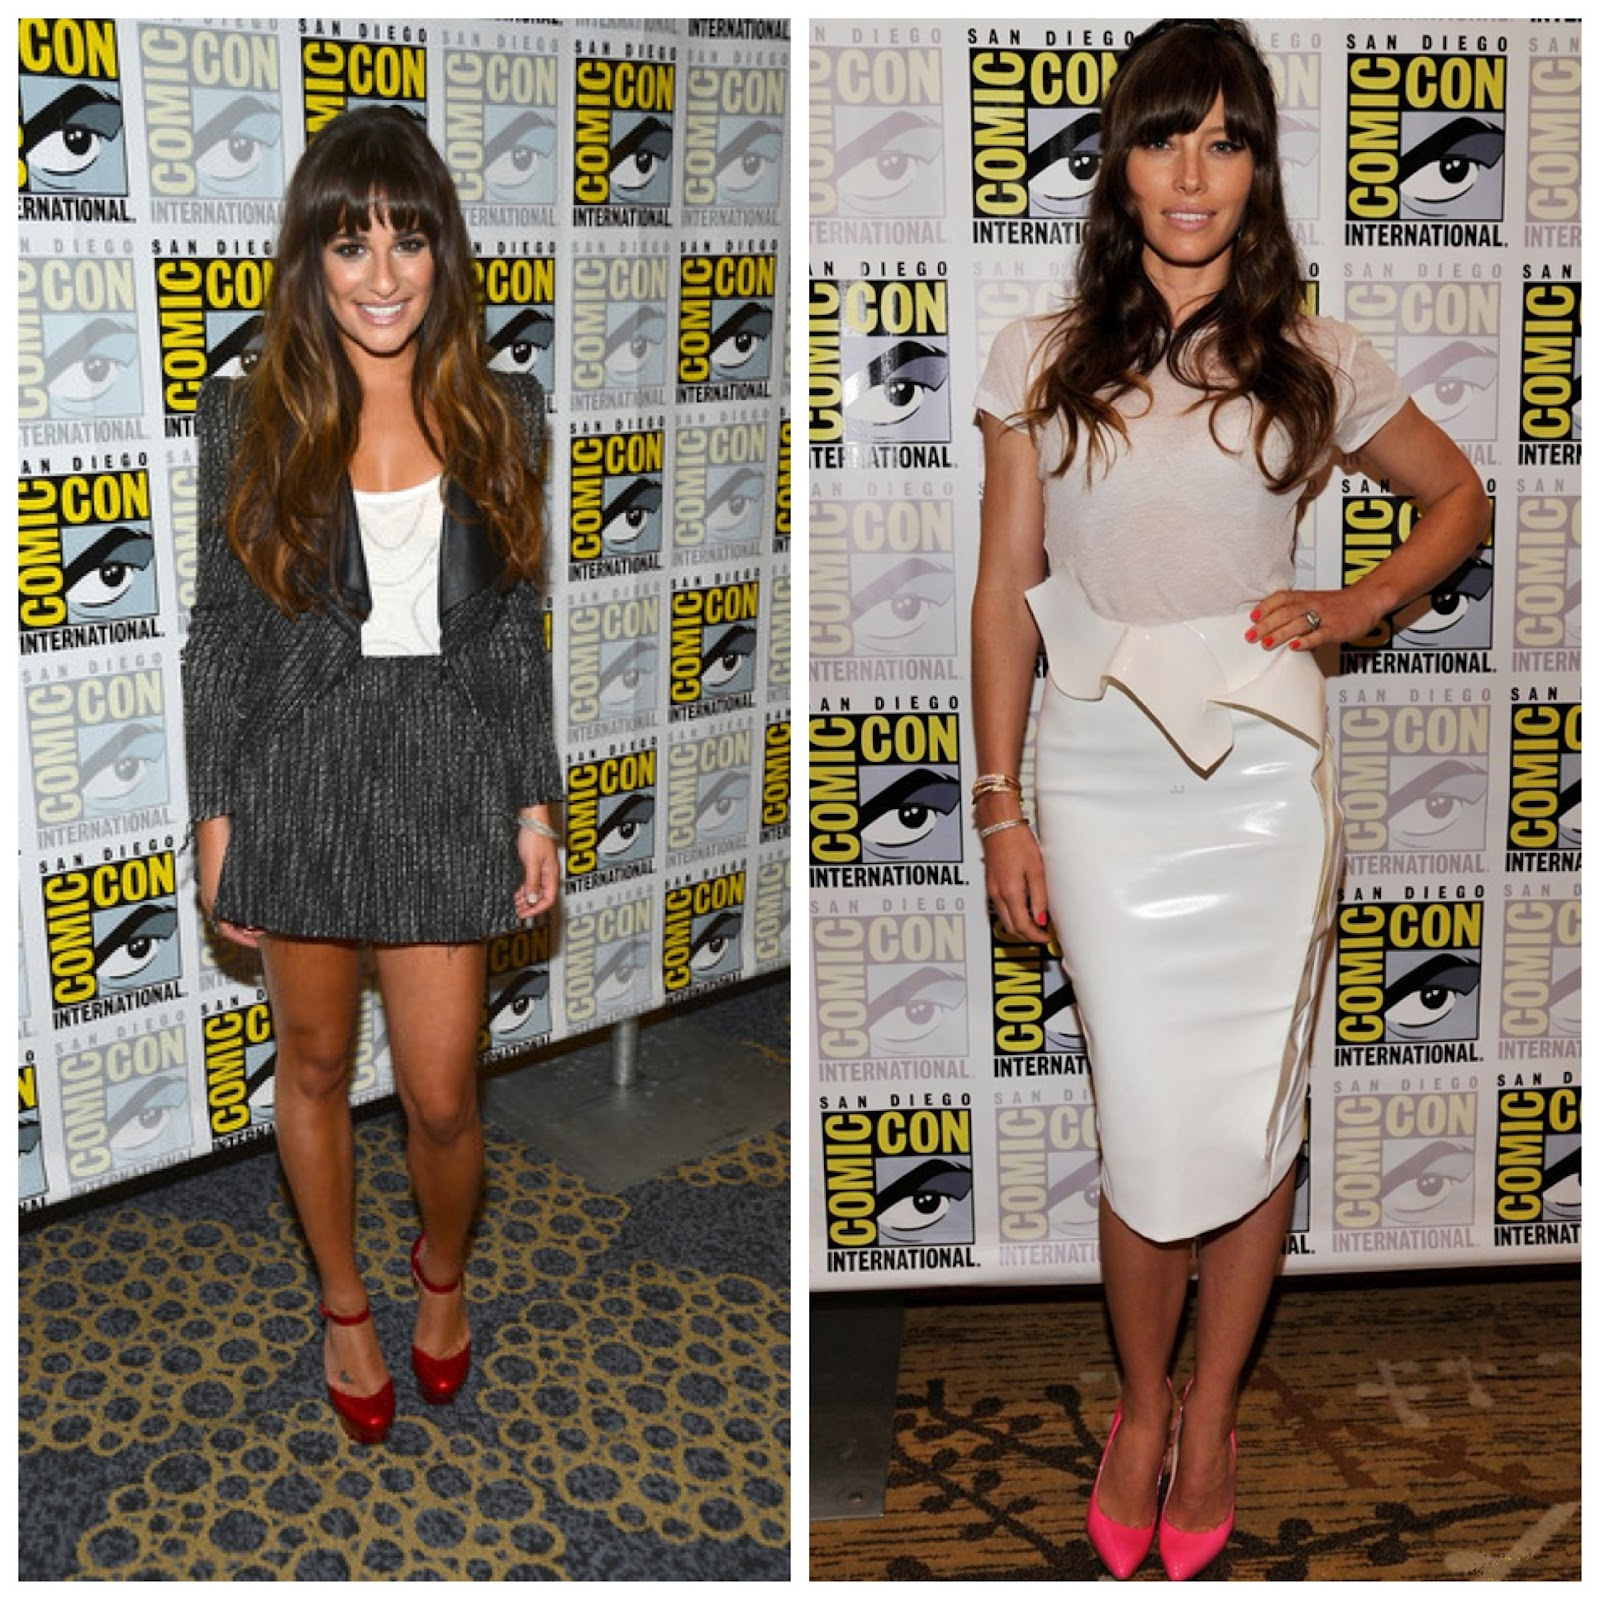 http://4.bp.blogspot.com/-P_E7eQAYjng/UANhfT0SneI/AAAAAAAABe0/pZfHWllkYXs/s1600/lea-michelle-jessica-biel-comic-con-2012.JPG